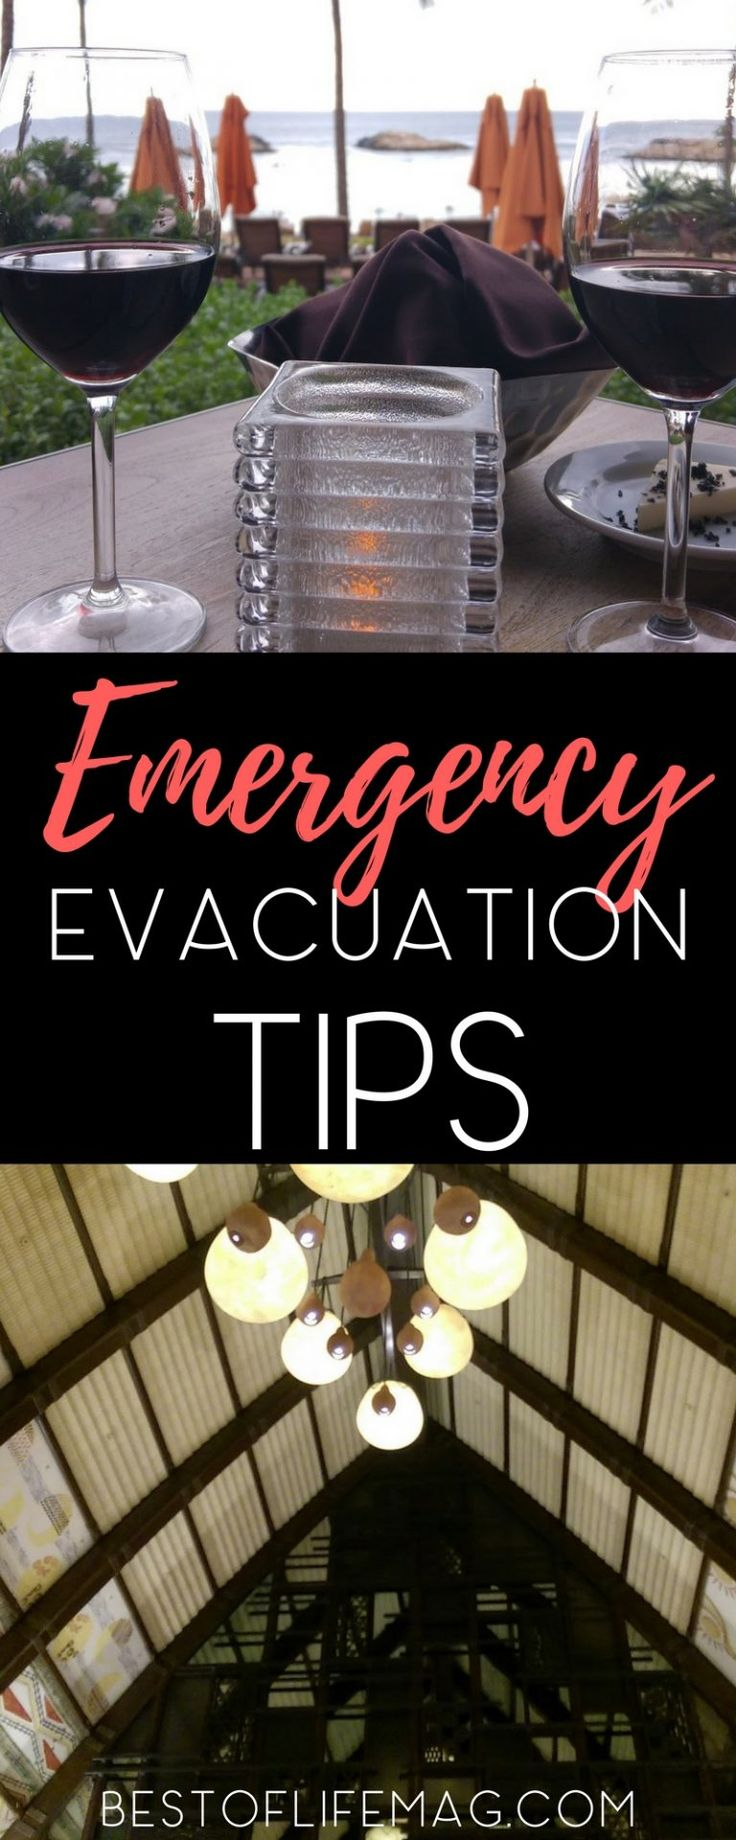 This week we experience our first emergency evacuation while traveling to Disney Aulani. Here's what I learned. When you hear the alarm...Travel Tips | Safety Tips for Travel | Safety Tips | Things to Know About an Emergency Evacuation